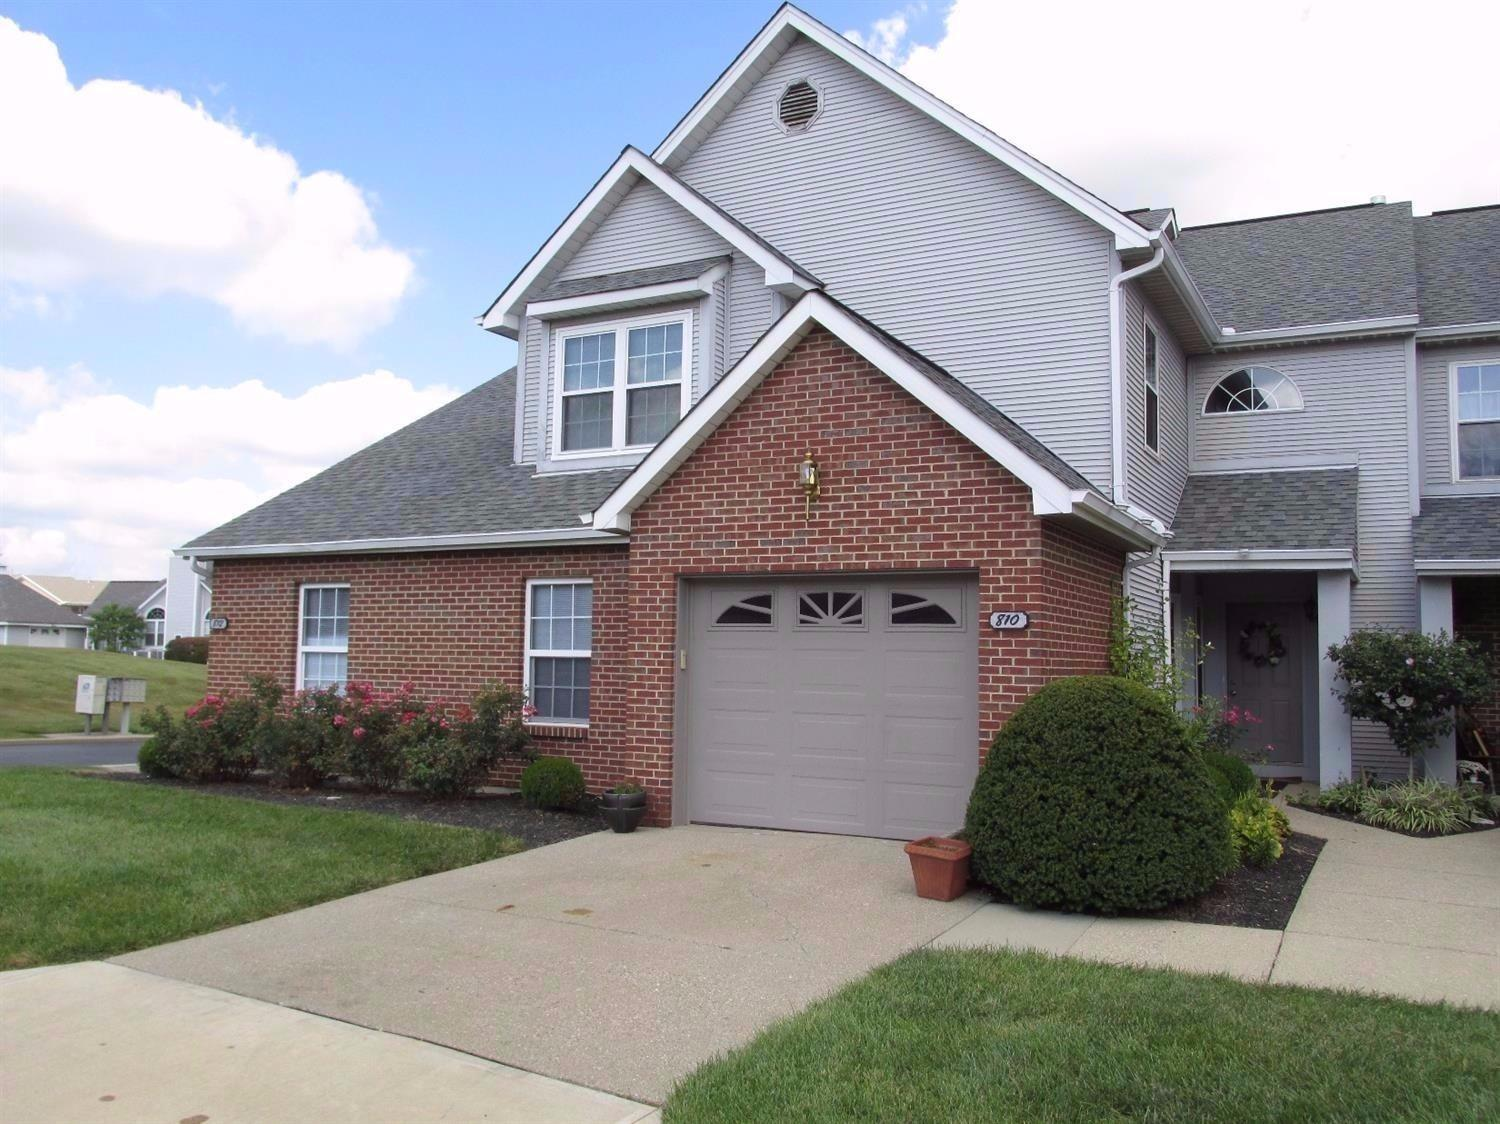 Photo 1 for 810 Highgate Dr Florence, KY 41042